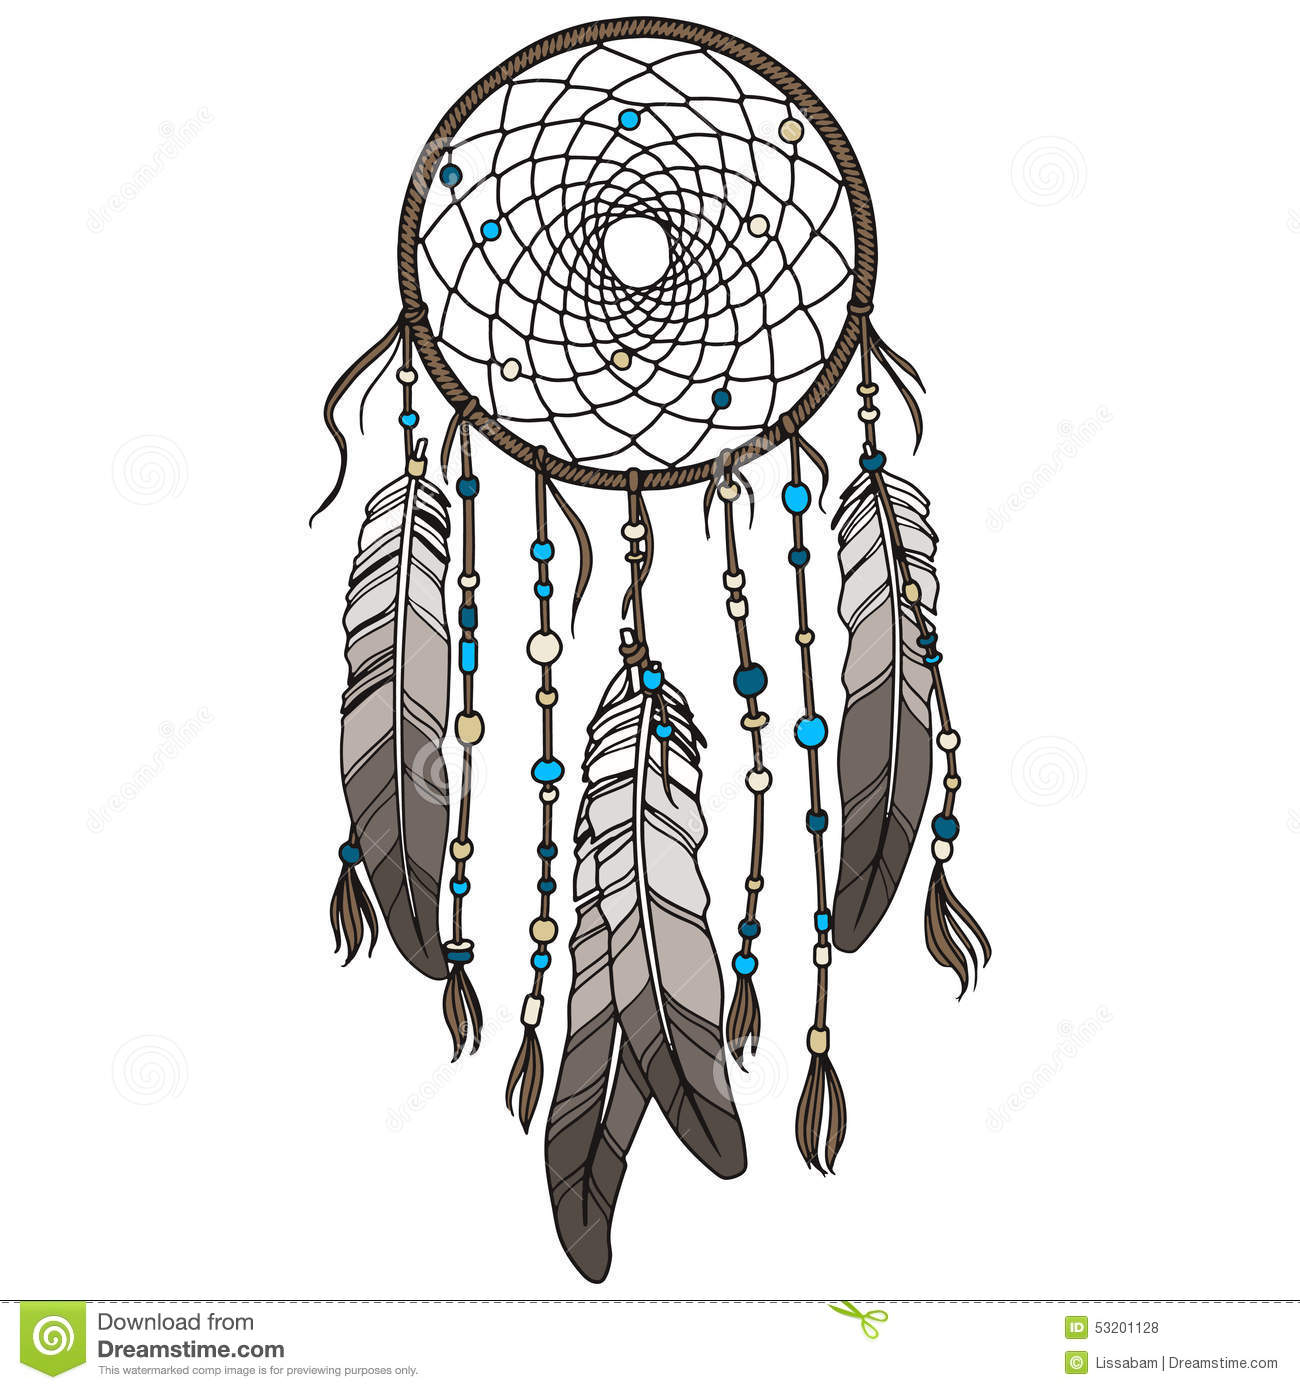 Iroquois Dream Catchers Native American Indian Dreamcatcher Illustration 40 Megapixl 33